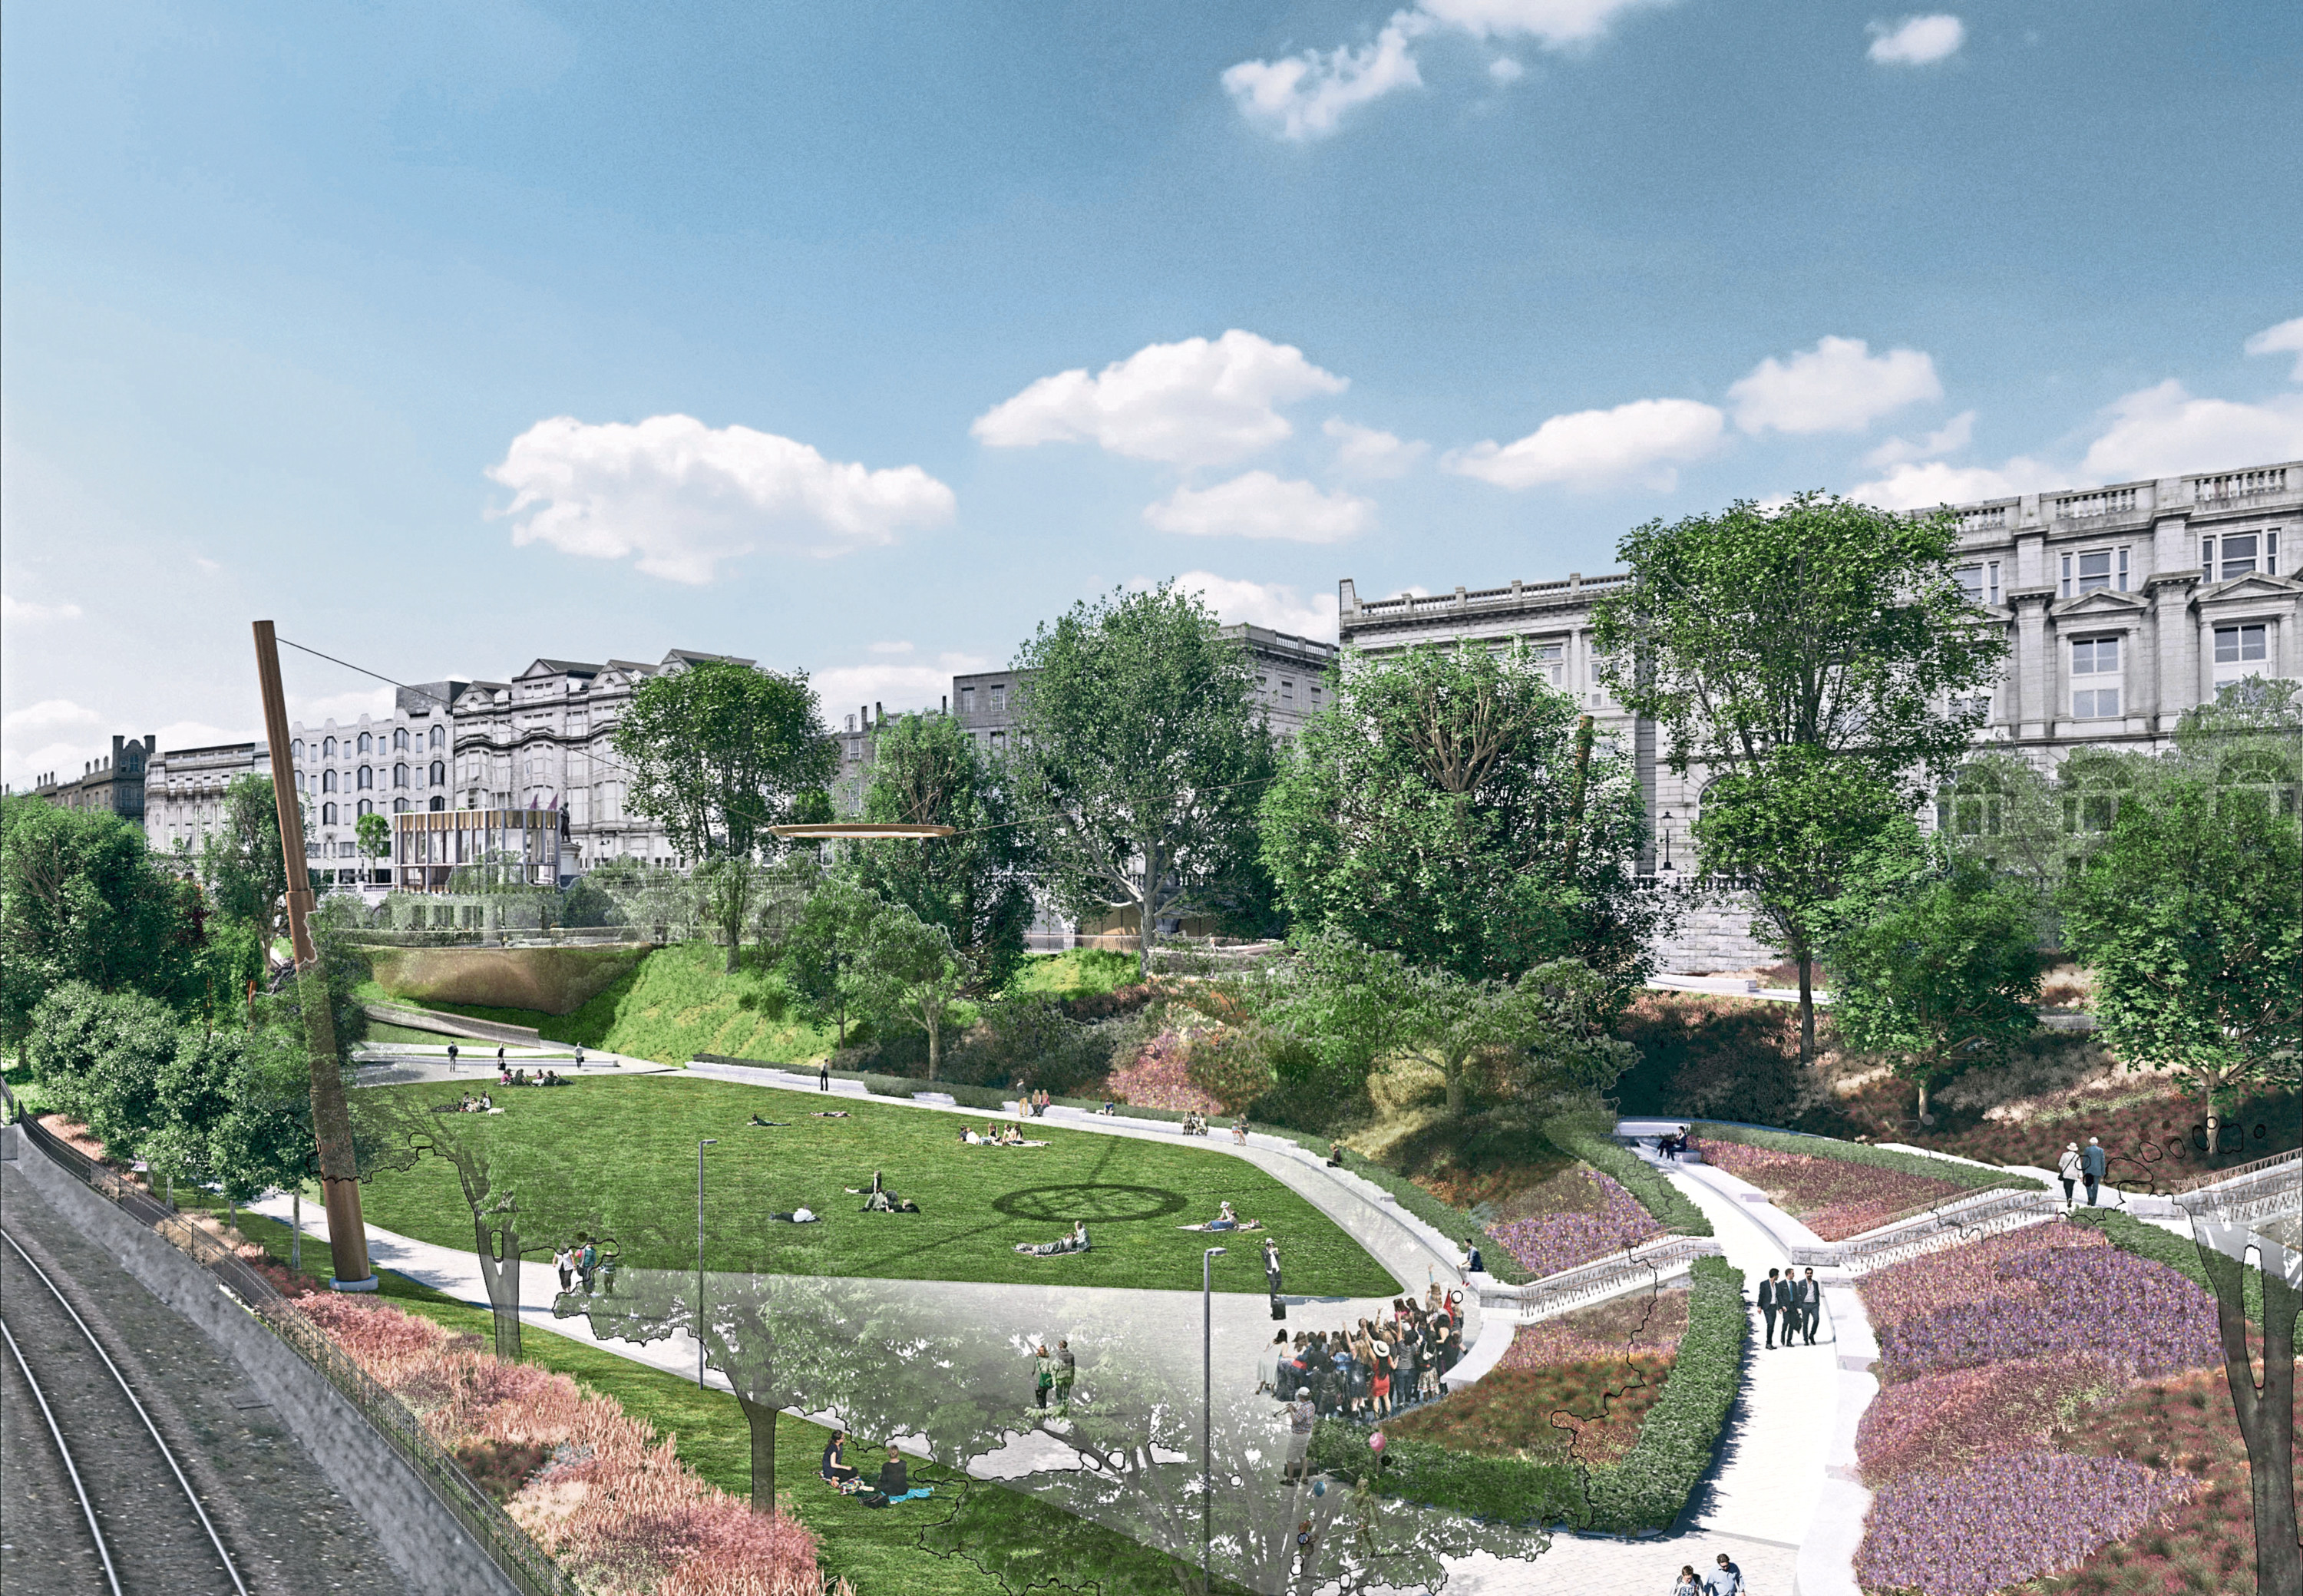 An artist impression of the planned changes to Union Terrace Gardens